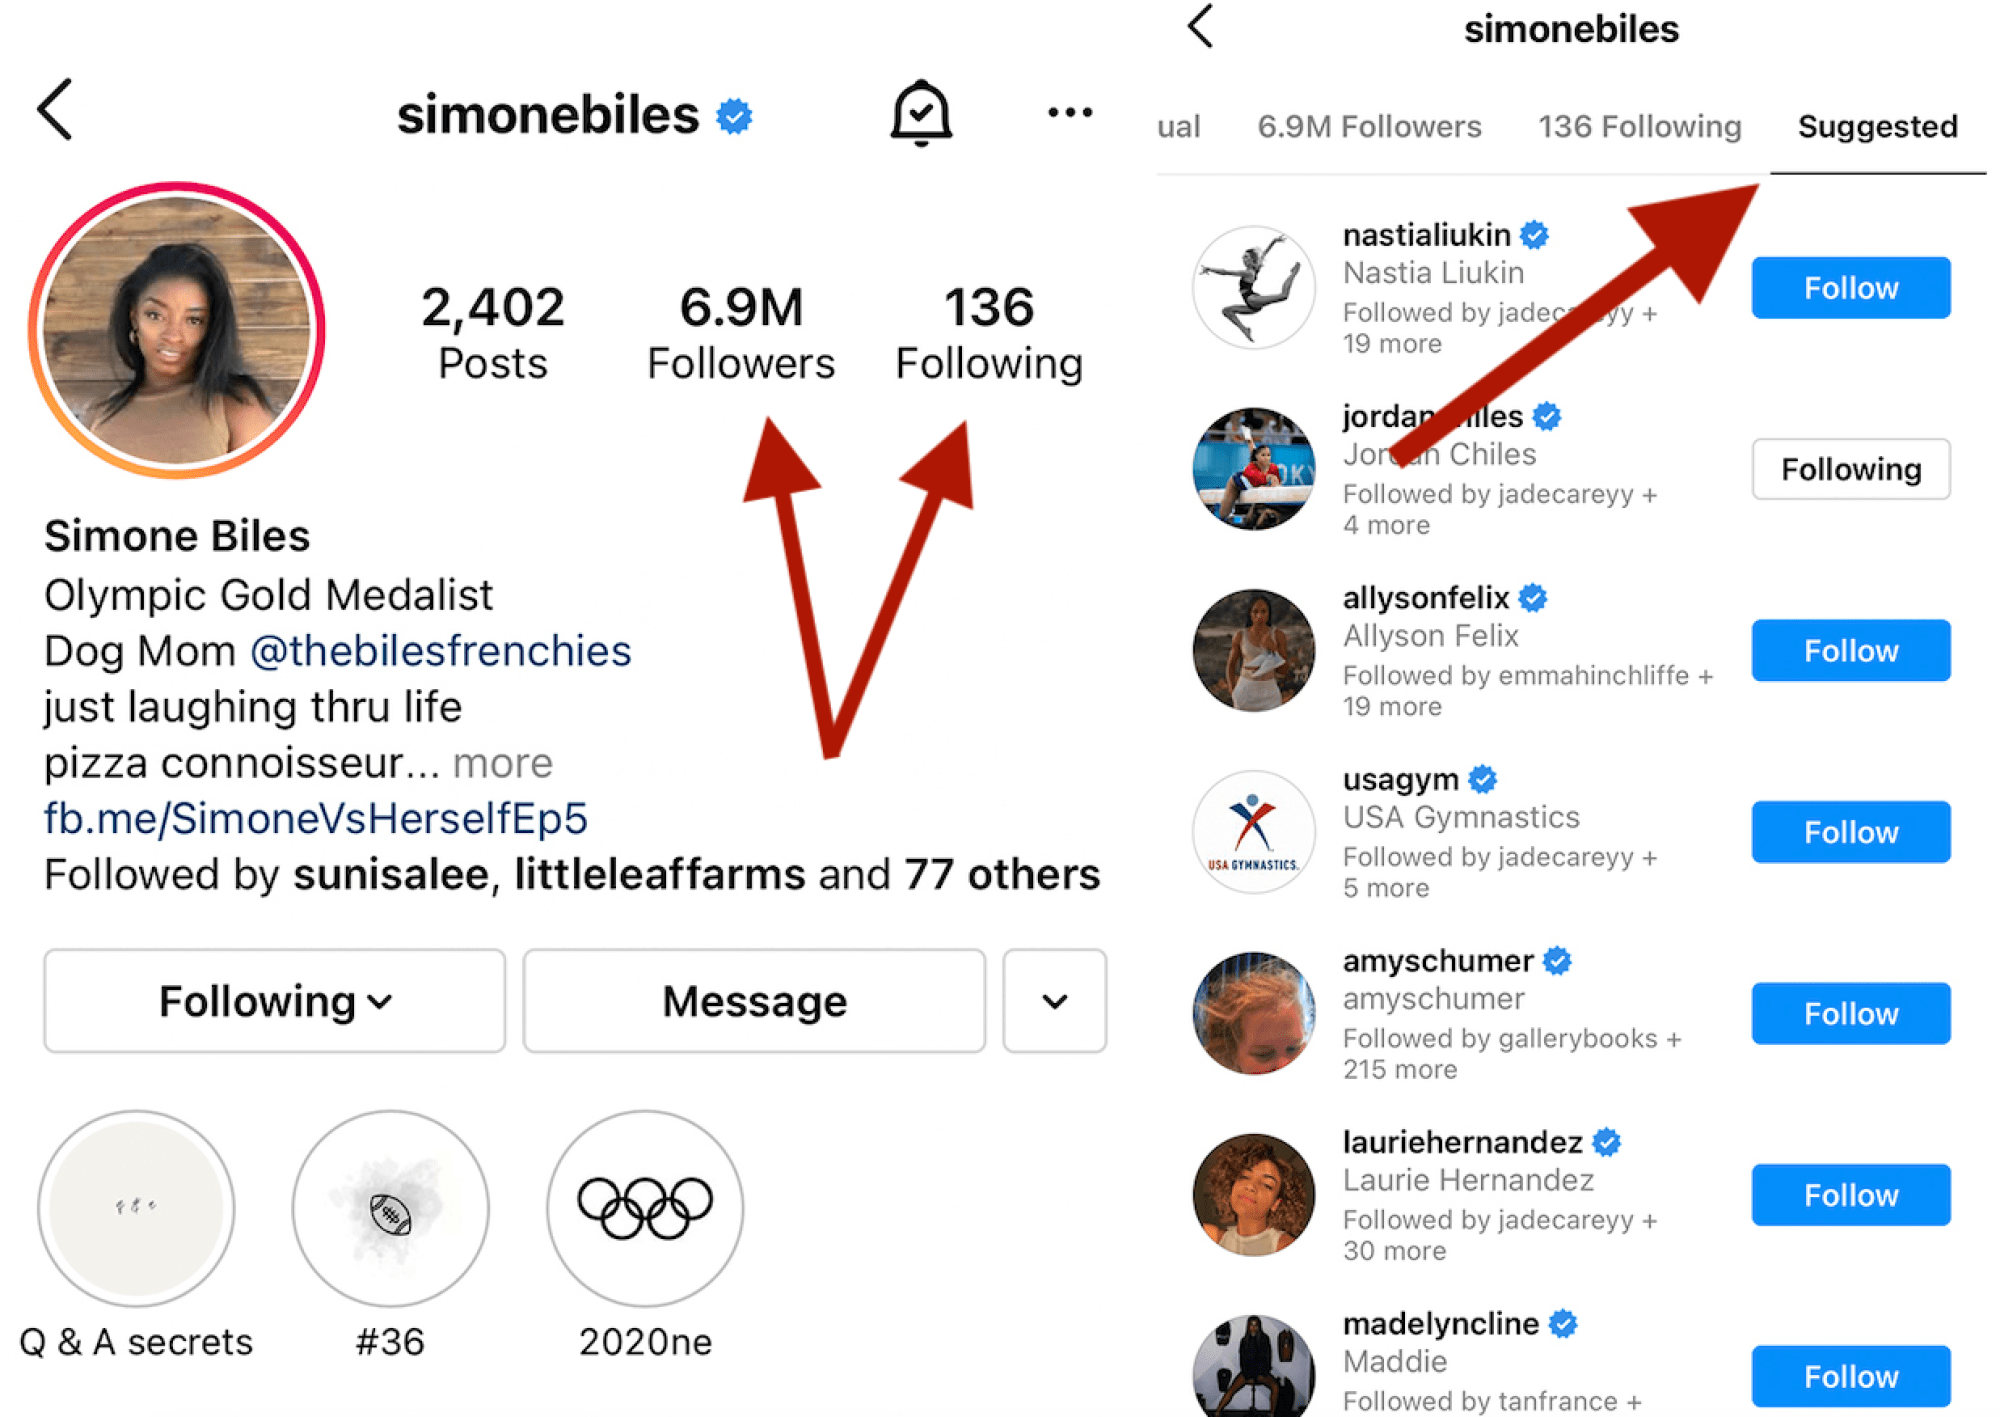 How to find users similar to Simone Biles. (Though there's only one GOAT.)